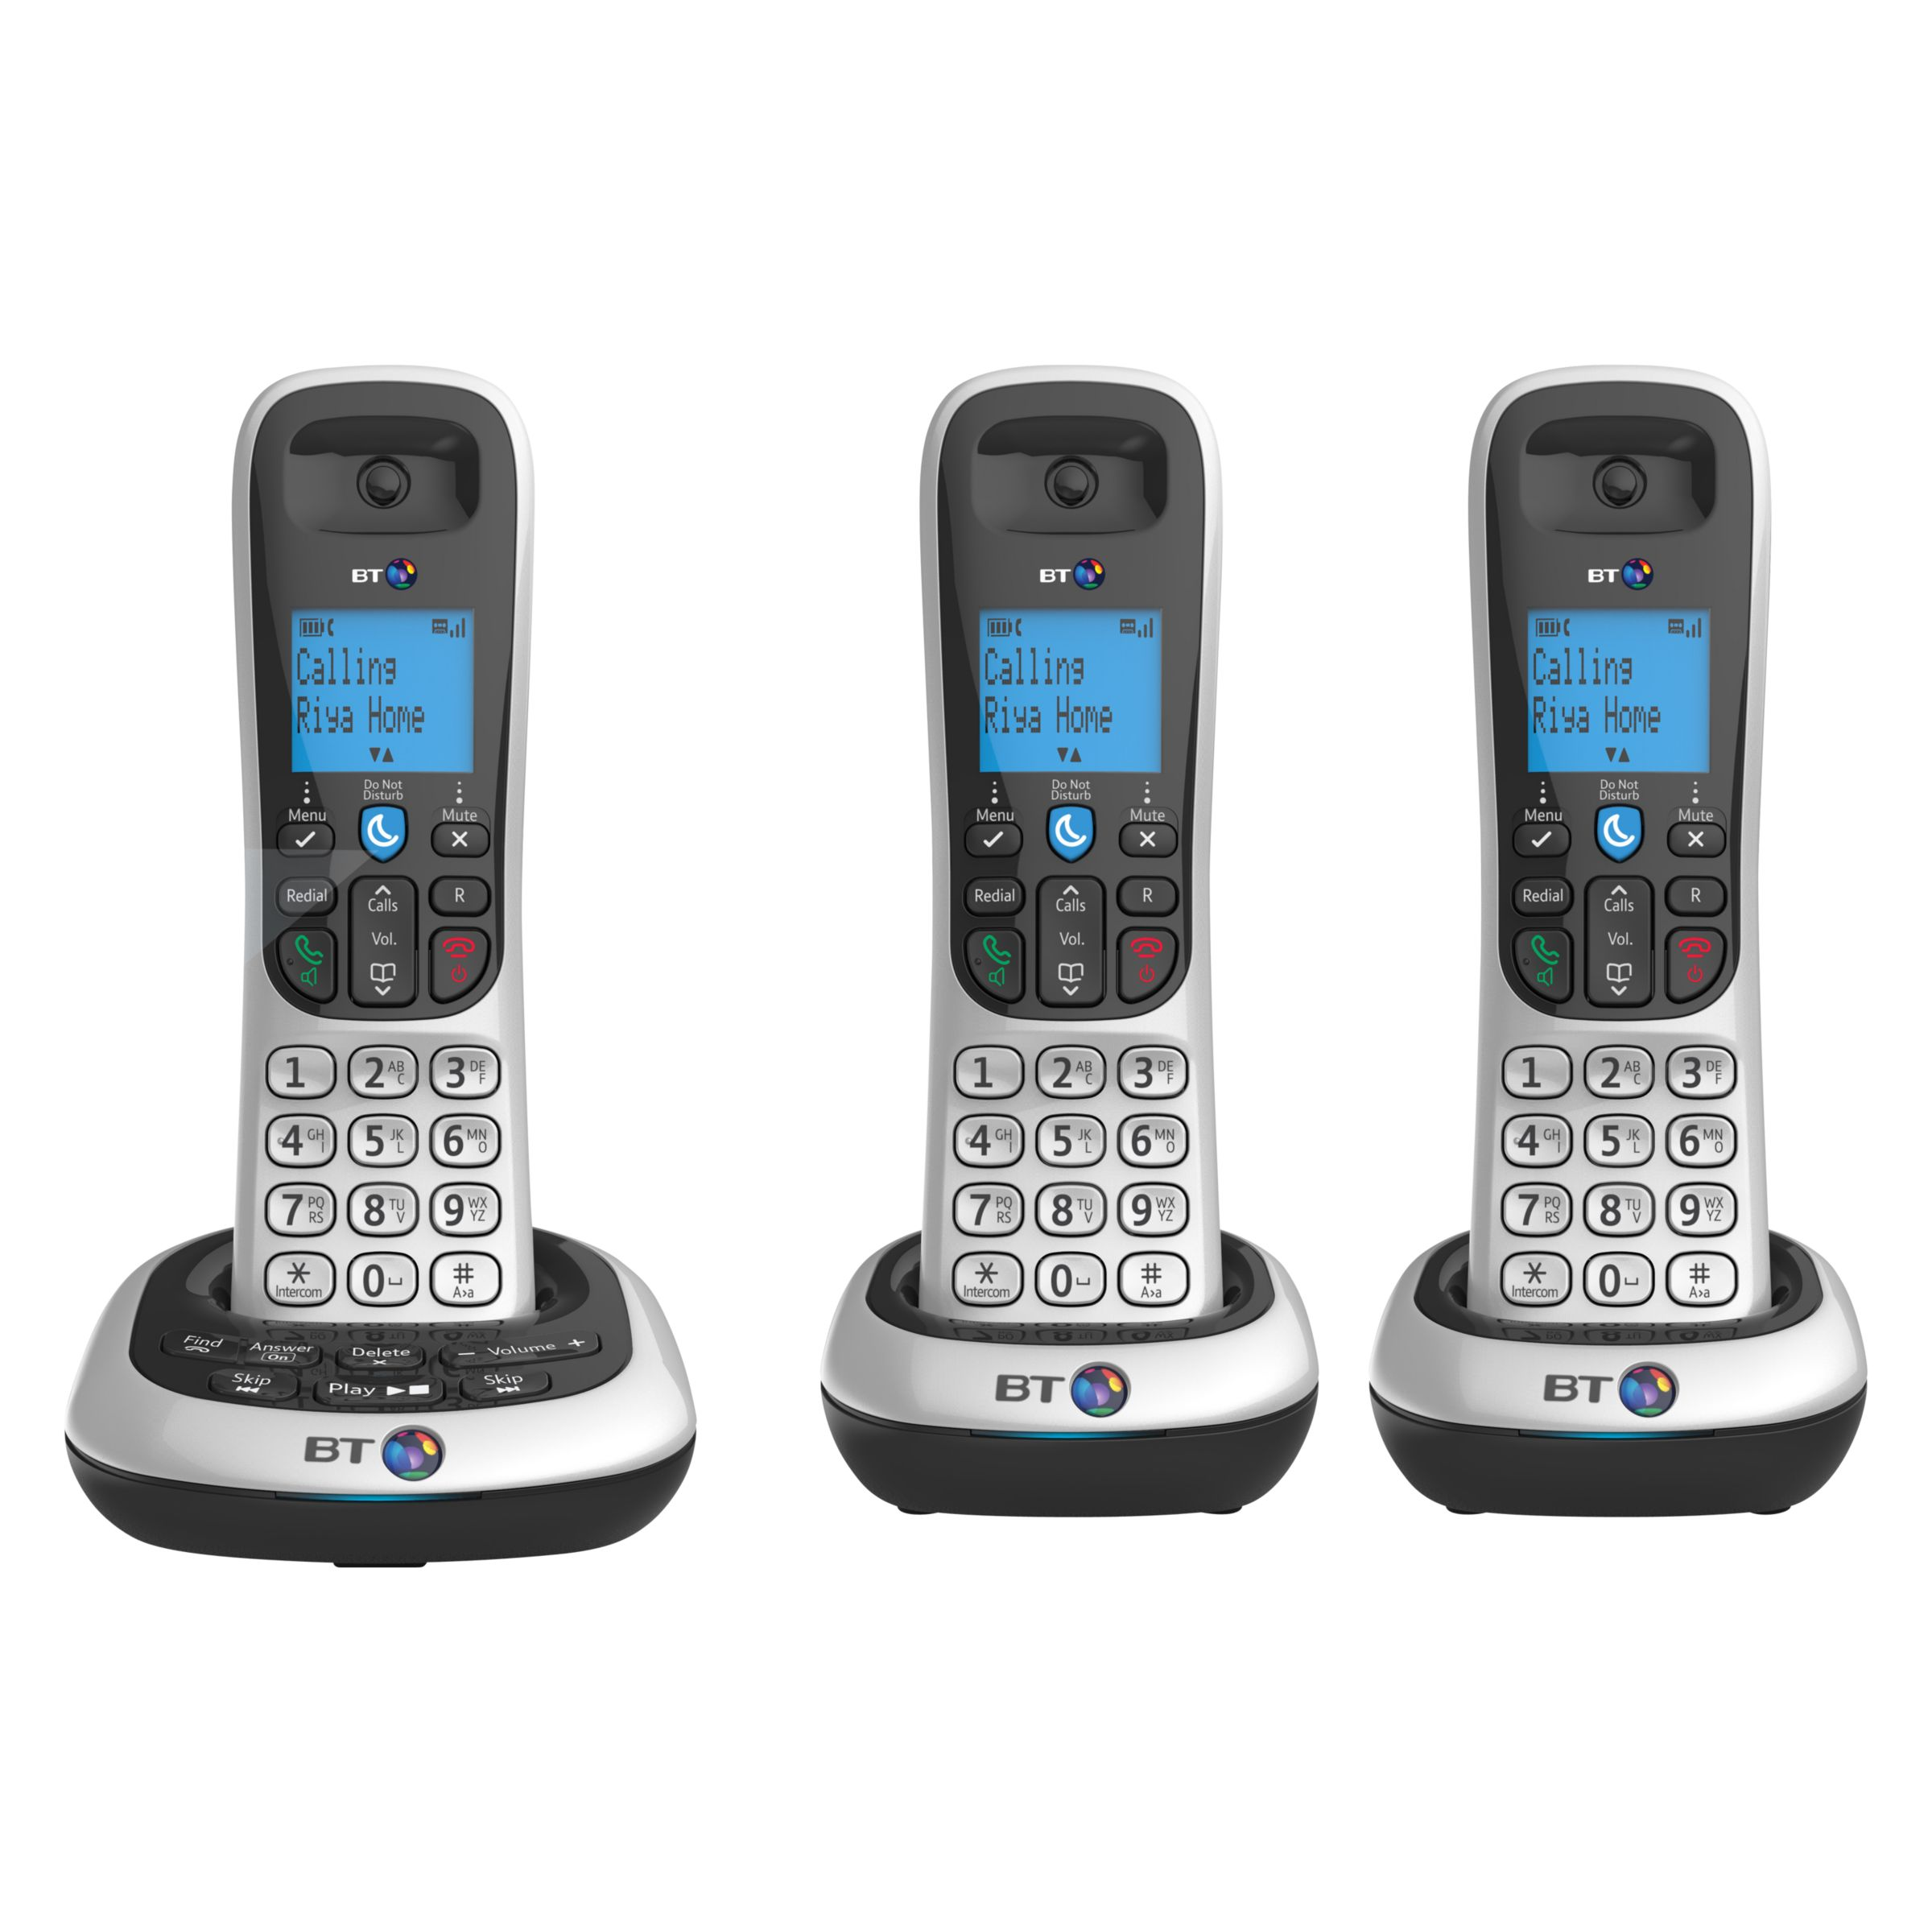 BT BT 2700 Digital Cordless Phone with Answering Machine, Trio DECT